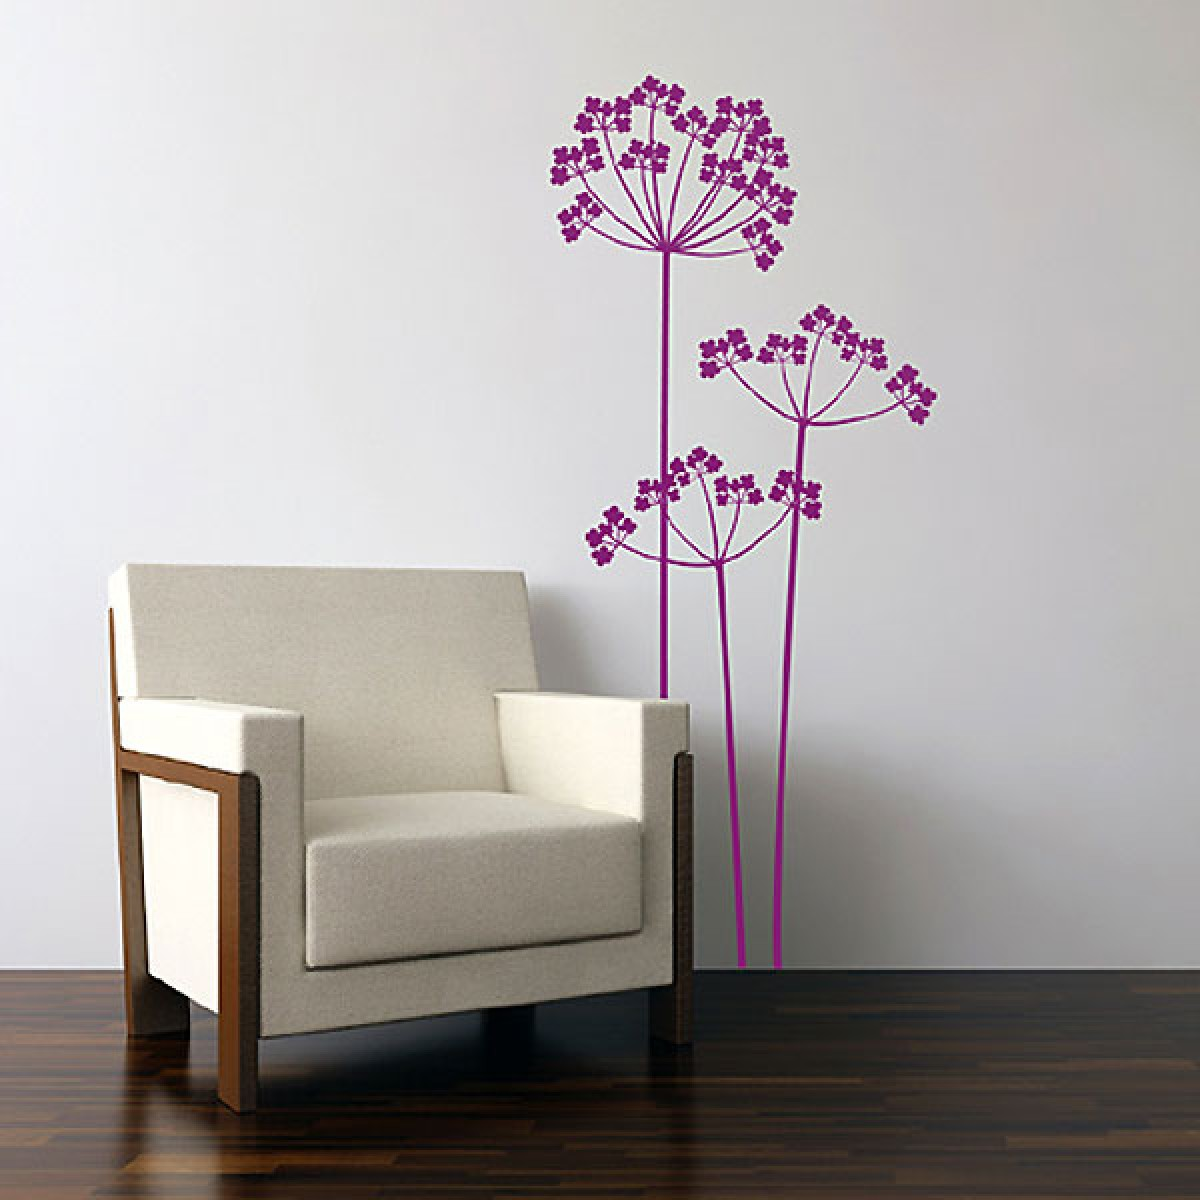 cow parsley wall sticker flower graphics wall decor